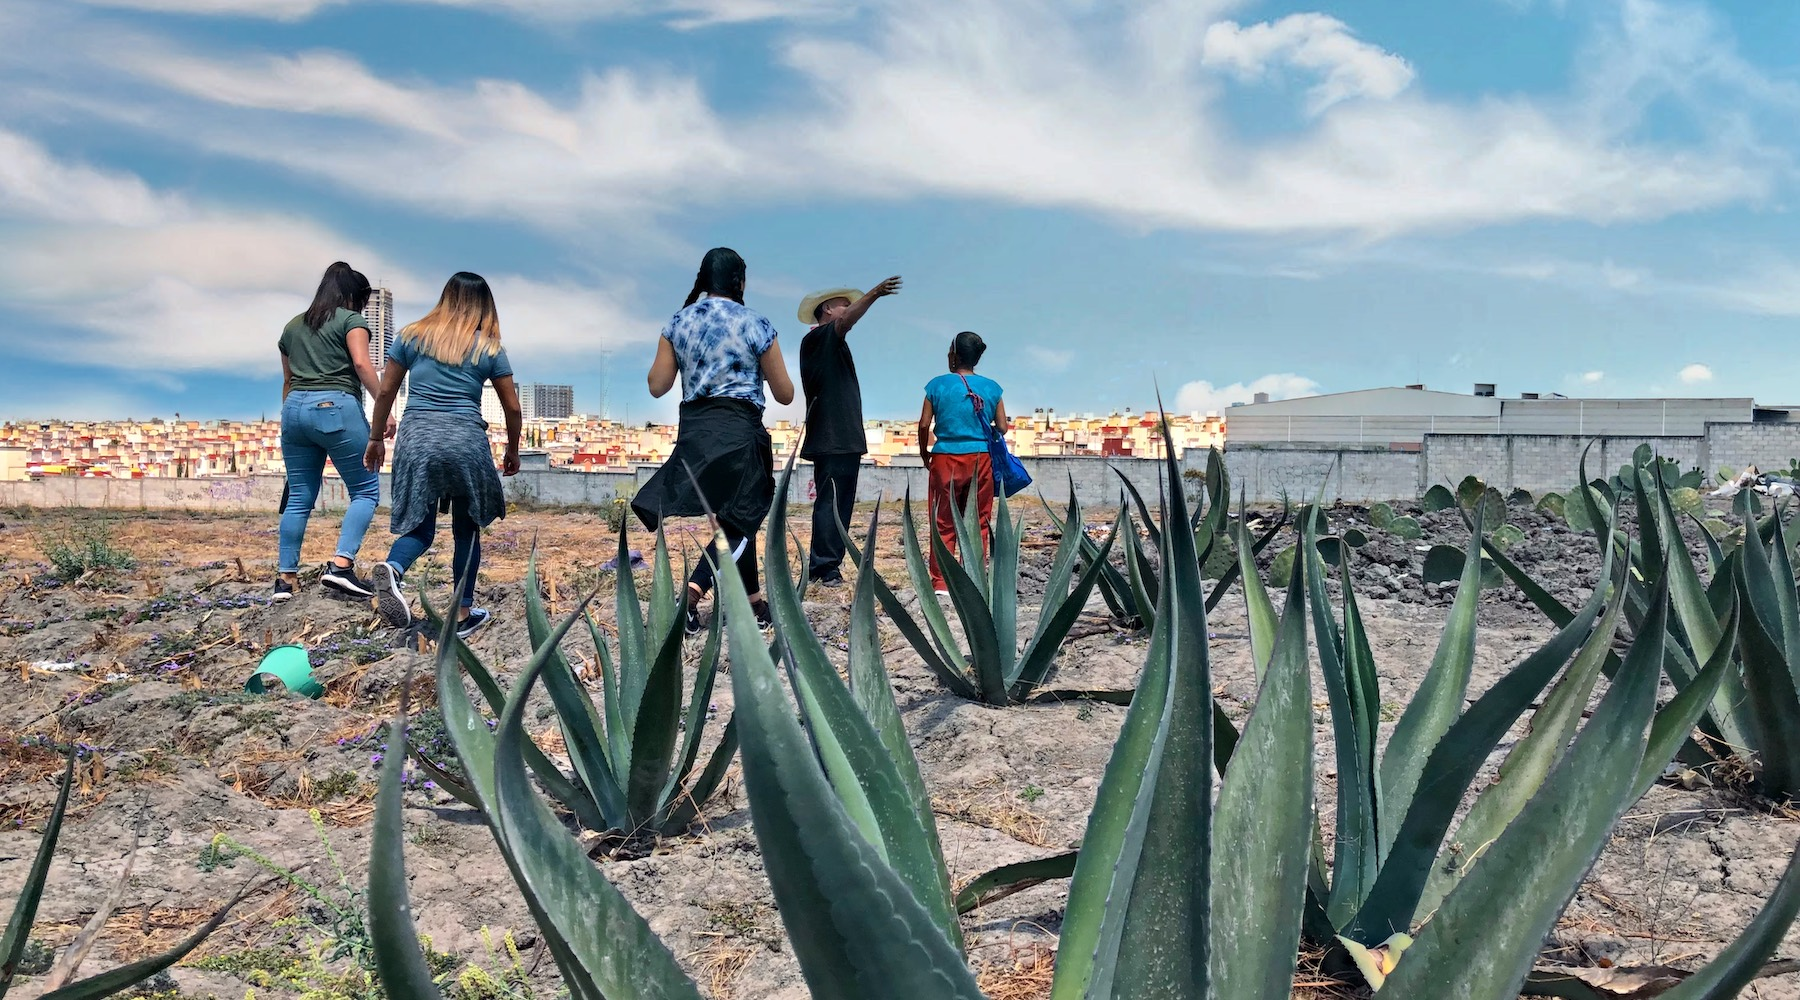 Group of students stands in an agave field overlooking Puebla's highrisers.